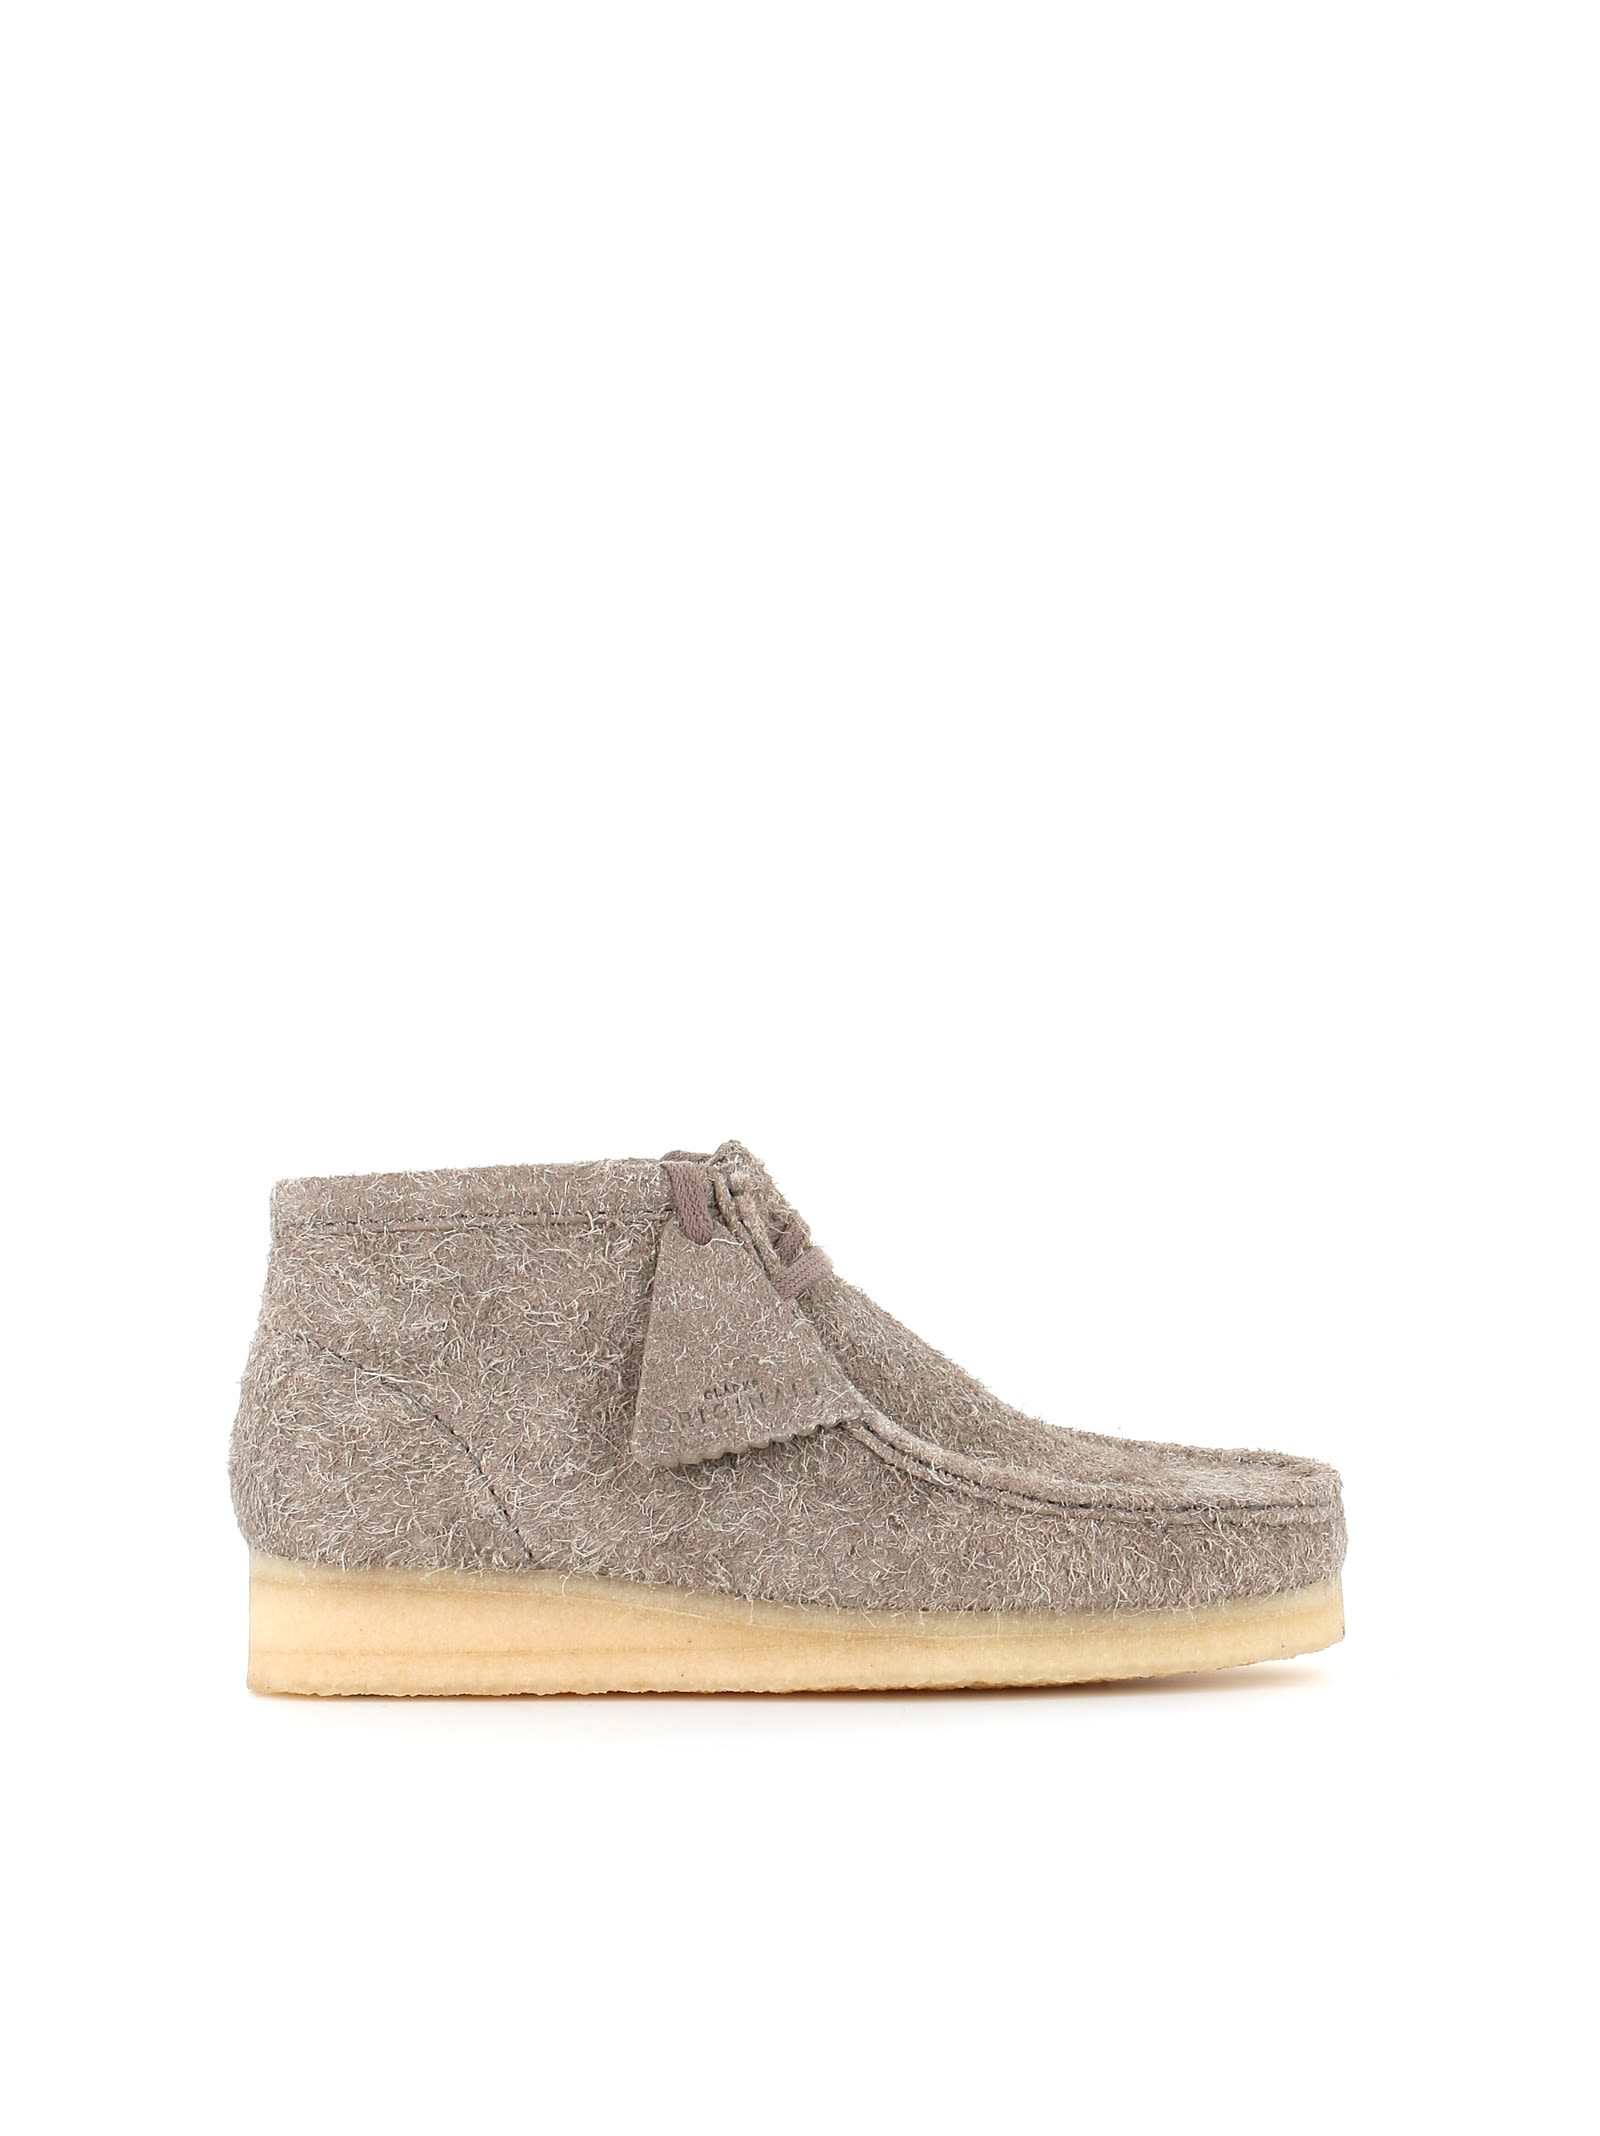 "Desert-Boots ""Wallabee Boot"" in Grey"